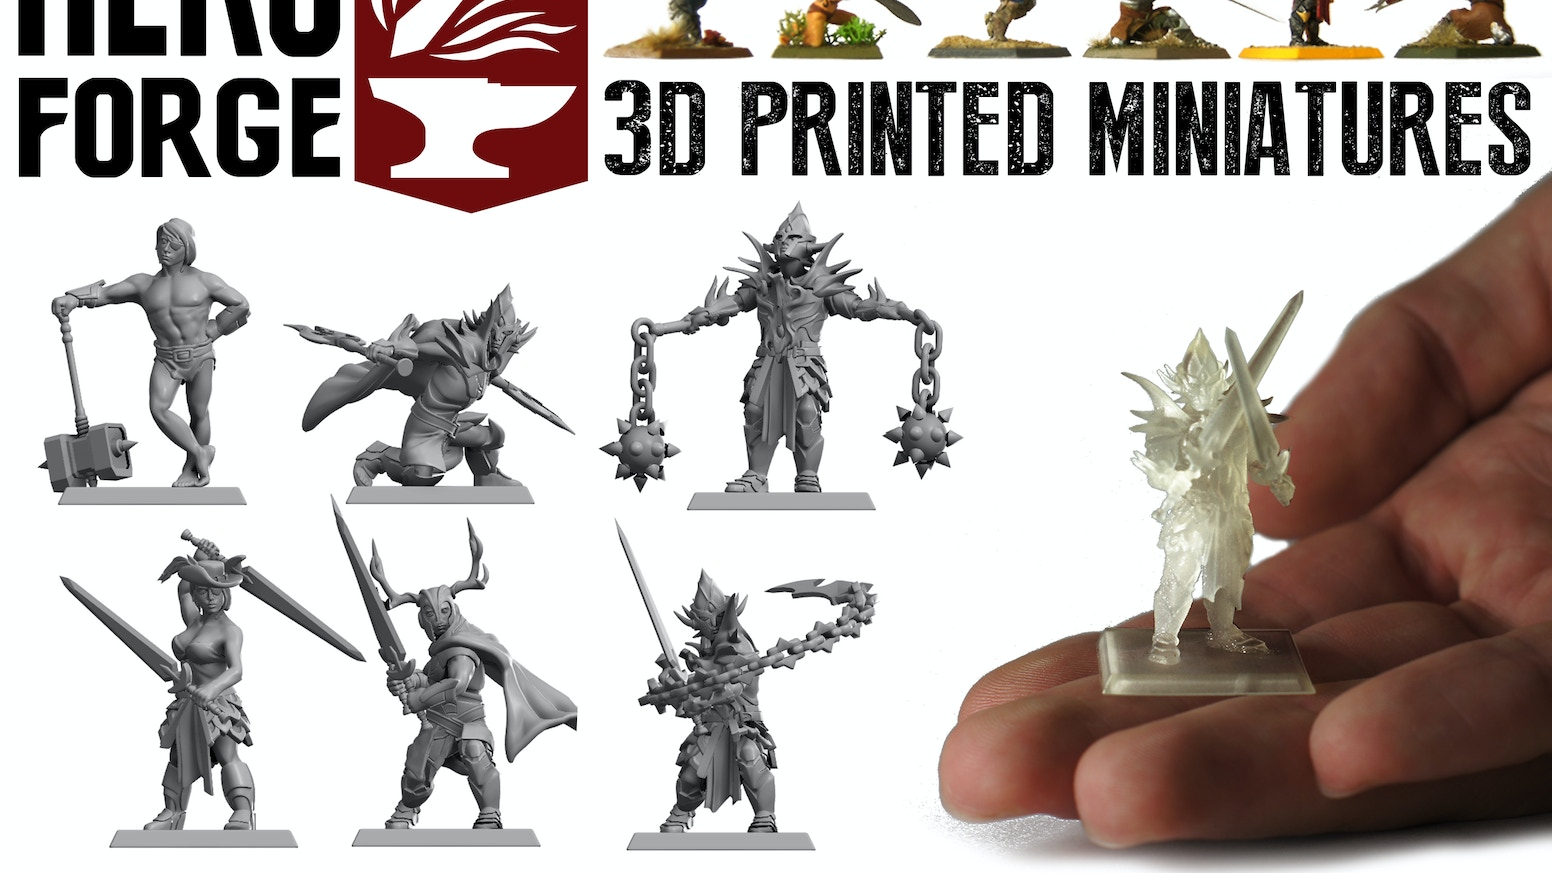 A service that lets you customize your perfect miniature using our web UI, have it 3D printed and delivered to your doorstep!